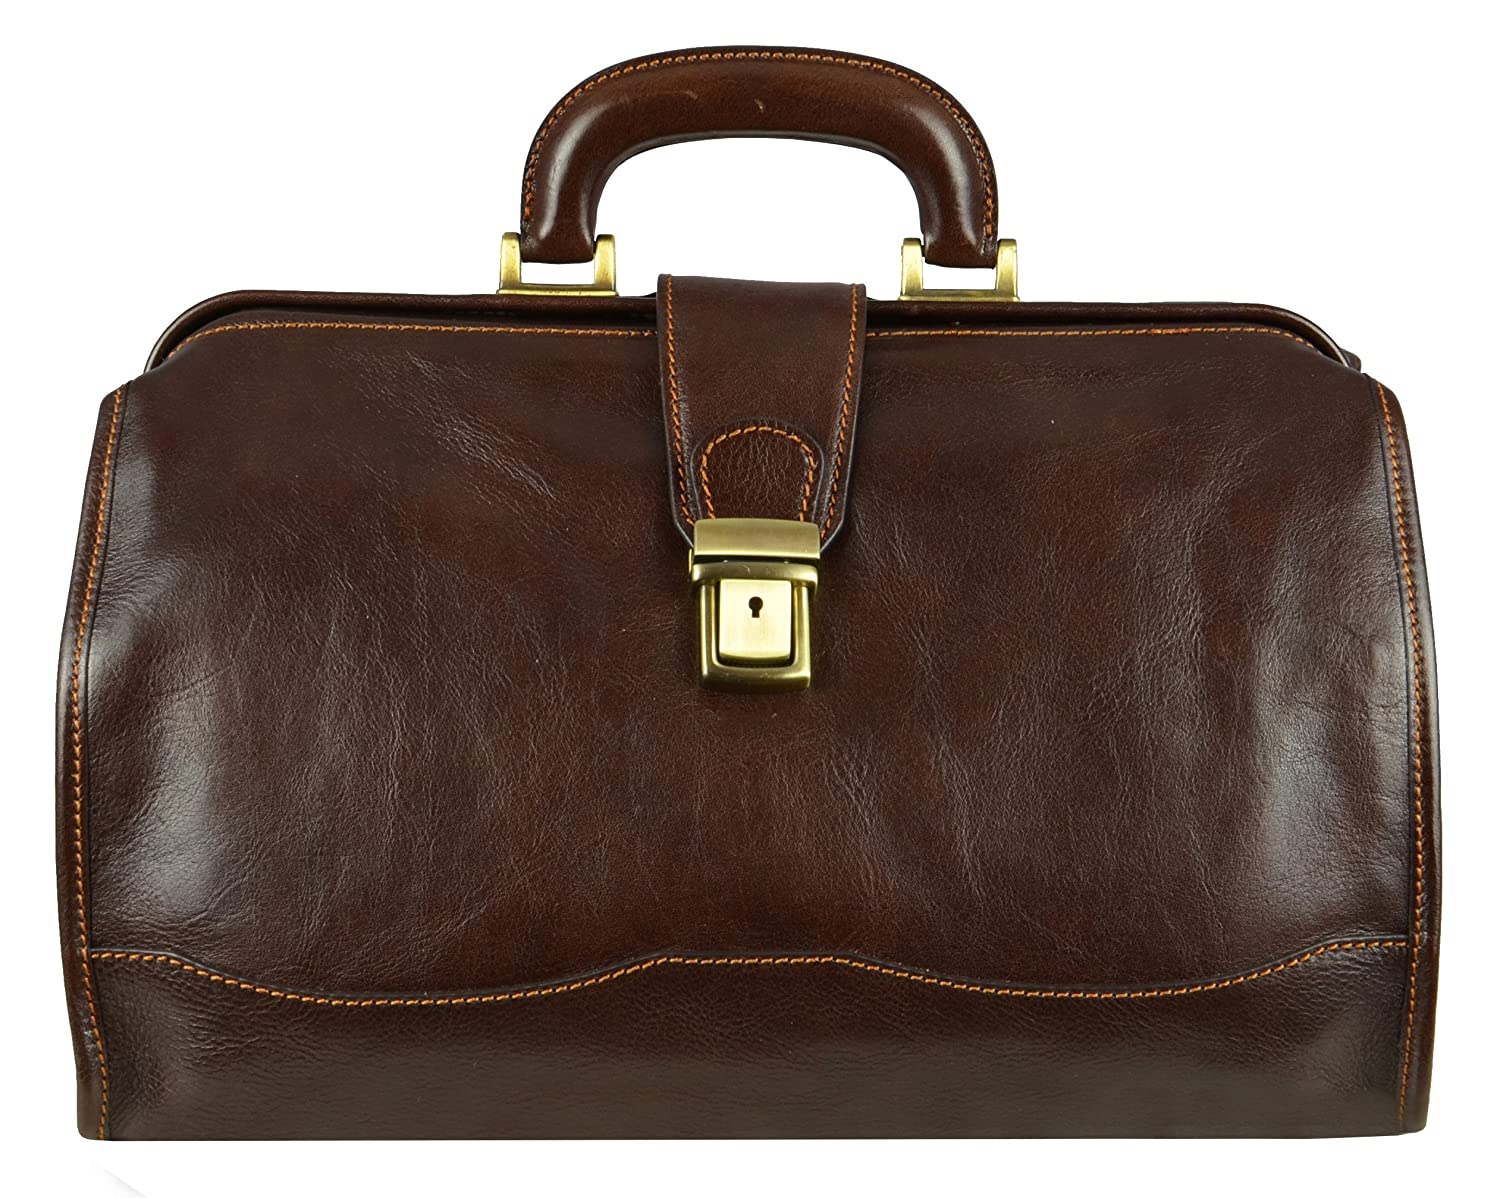 Sac Docteur en cuir, Sac Medical en cuir style vintage Marron - Temps résistance 1172001 Sac Medical en cuir style vintage Marron - Temps résistance 1172001